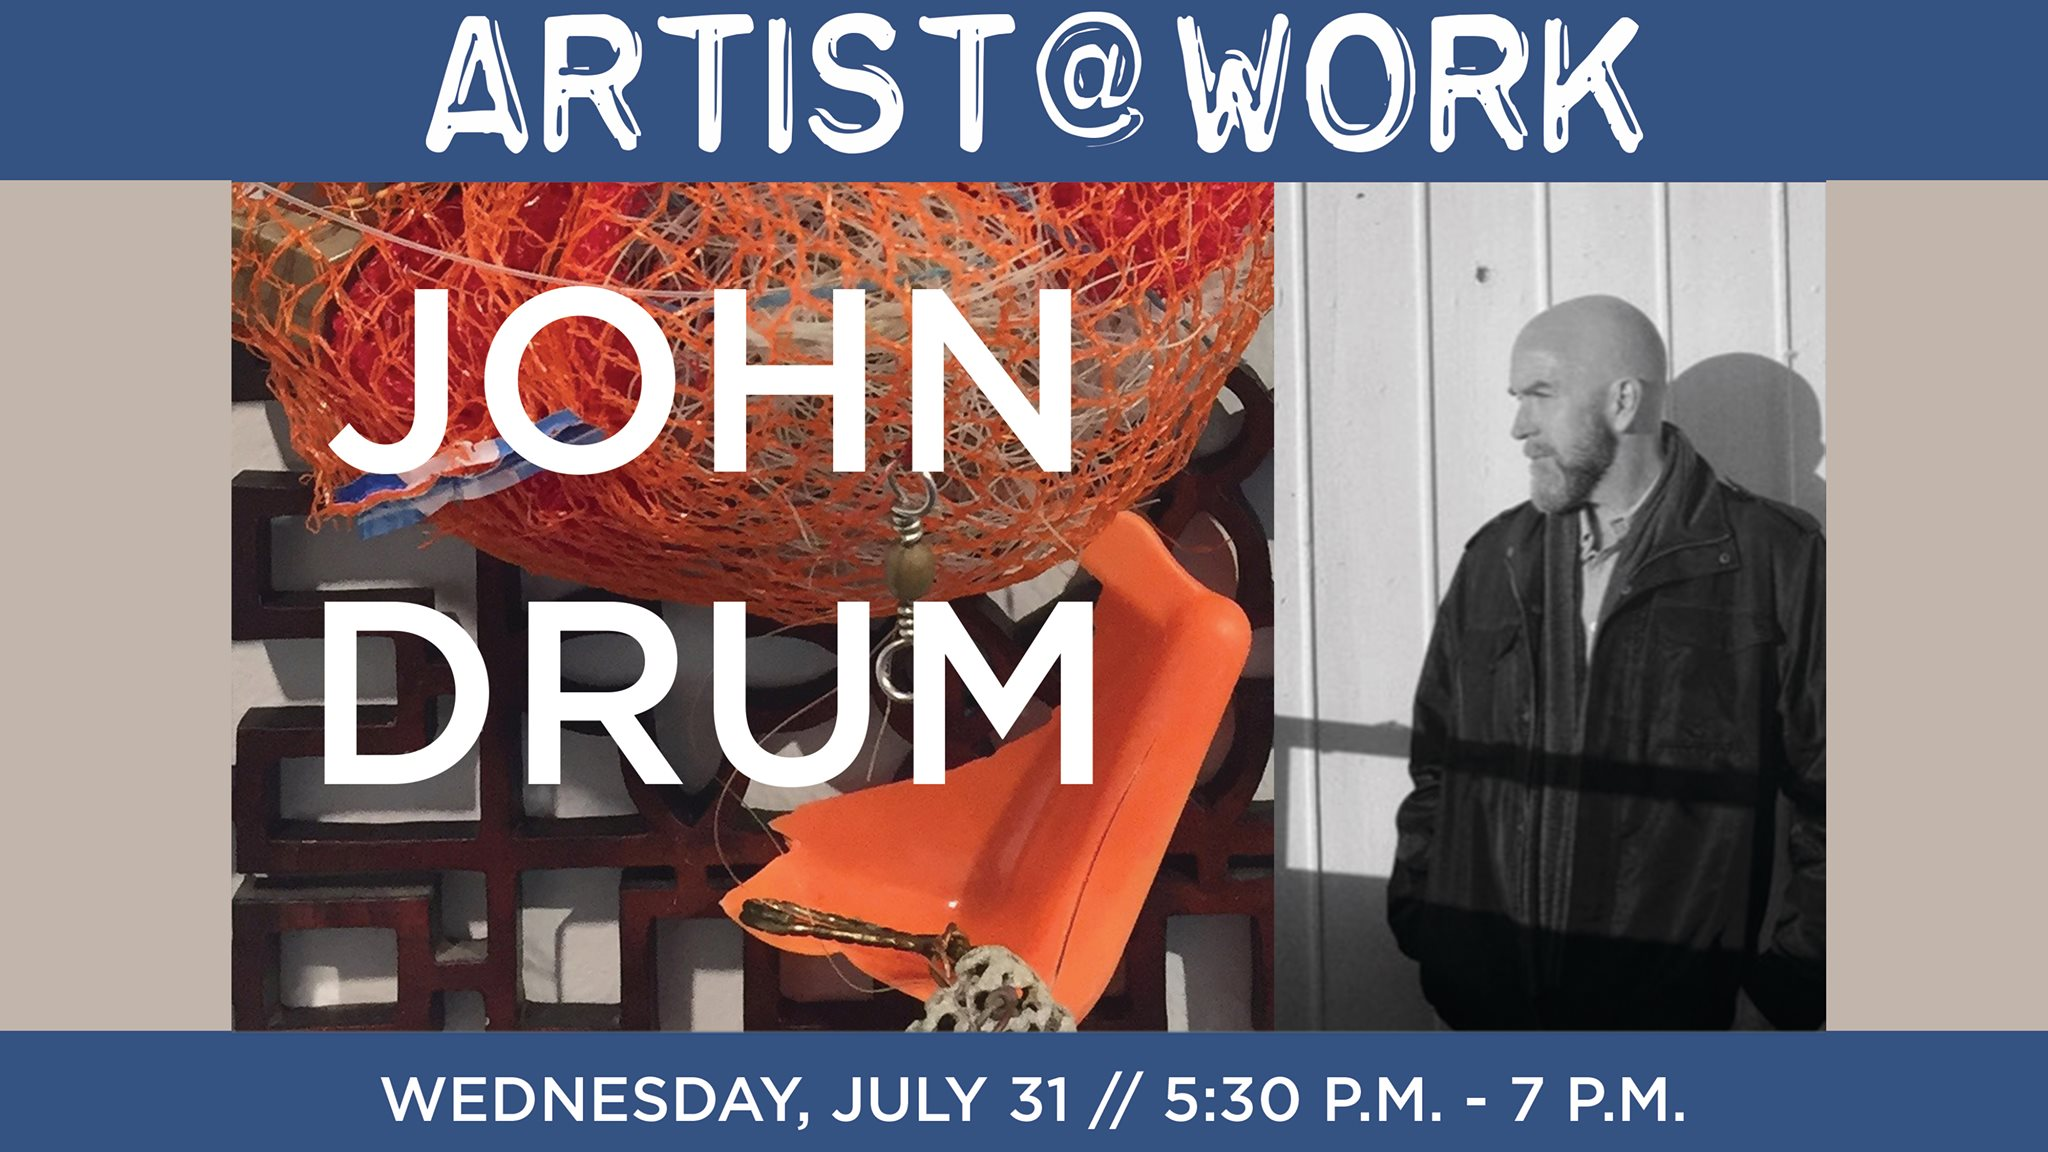 John Drum - Artist At Work